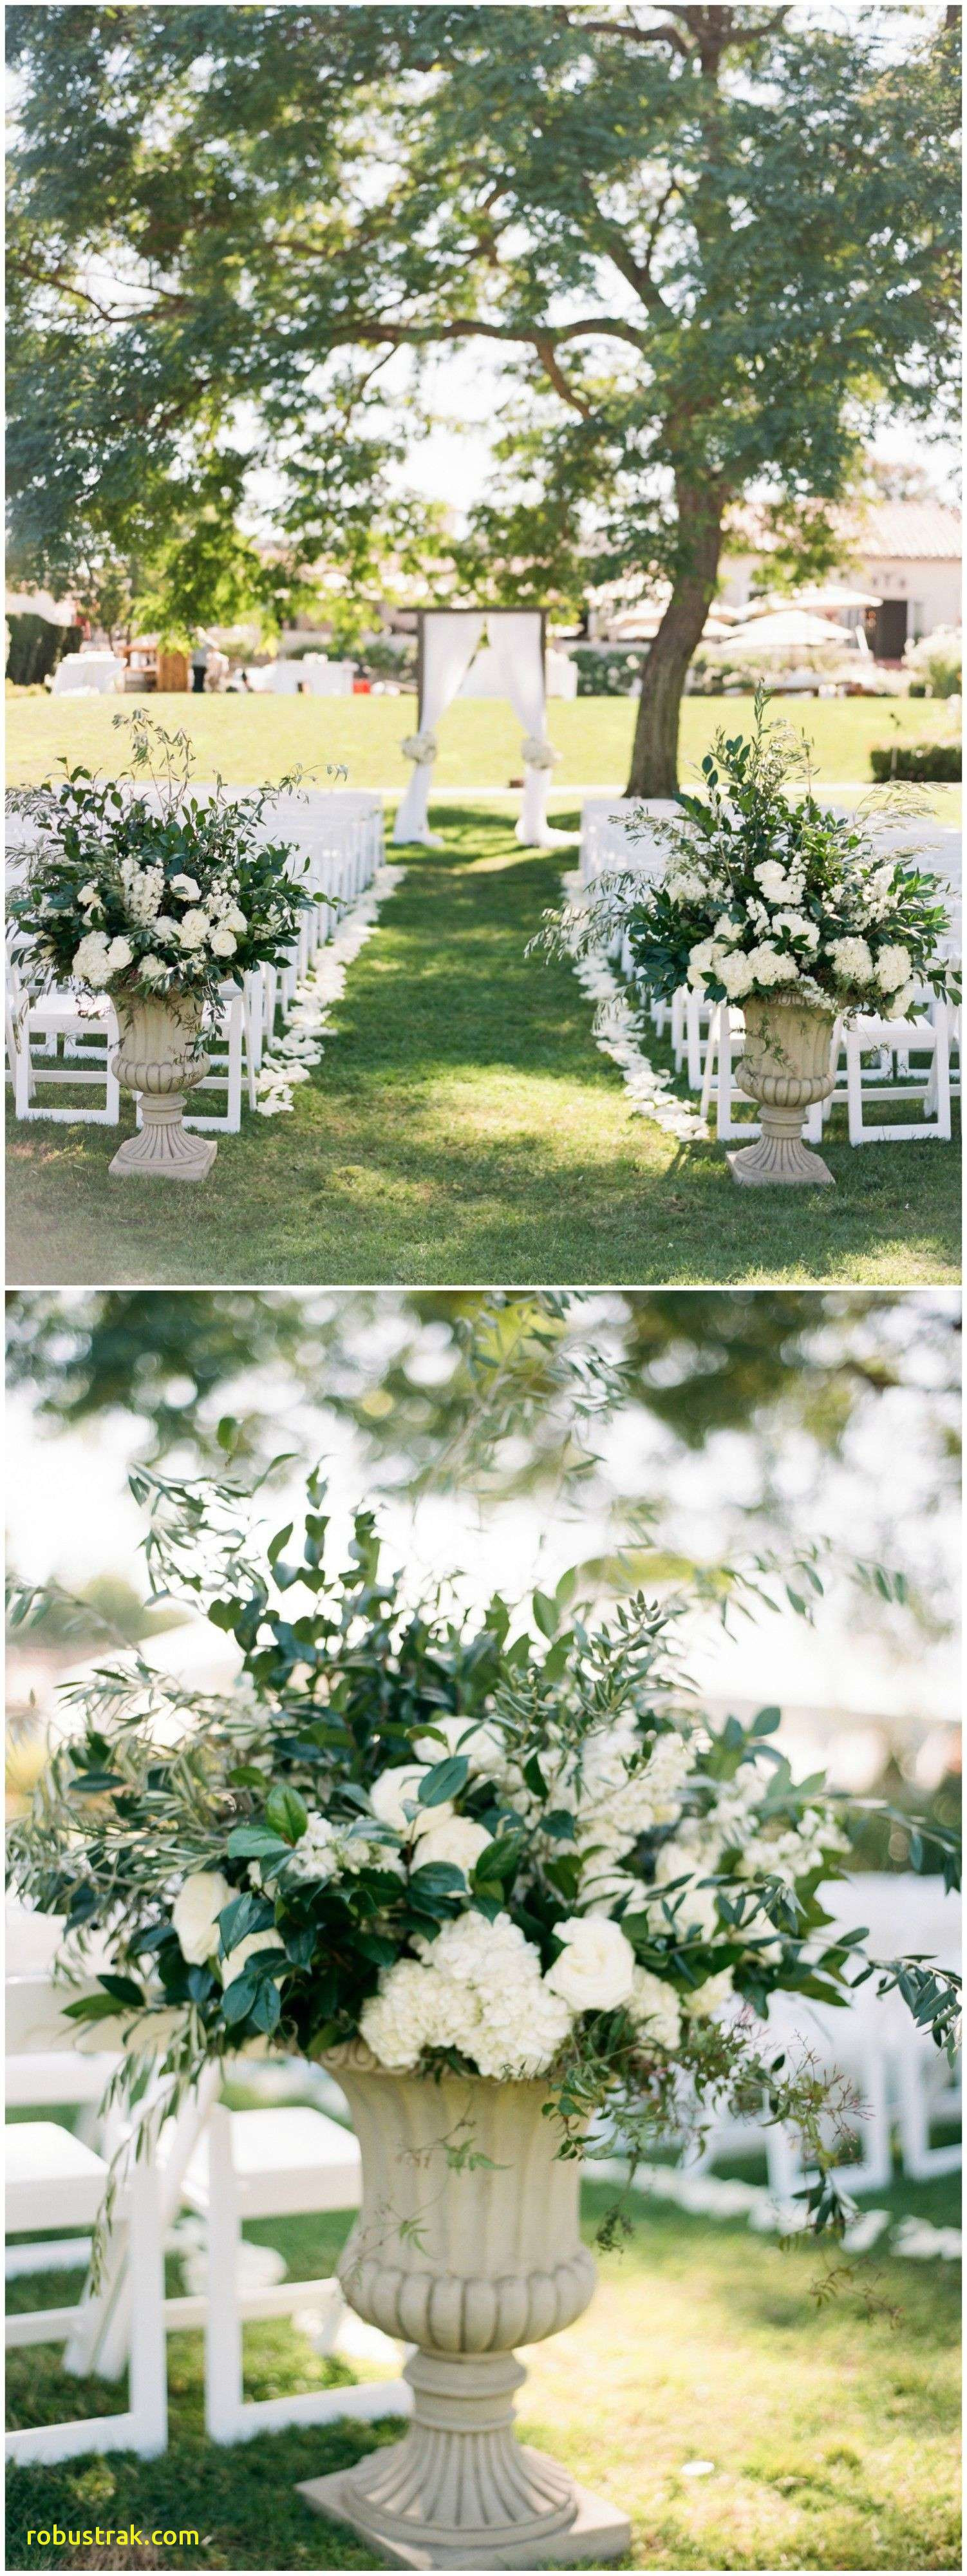 cowboy boot flower vase of unique diy outdoor wedding aisle decorations home design ideas with regard to the smarter way to wed design wedding aisle decorations 47 awesome wedding aisle decorations